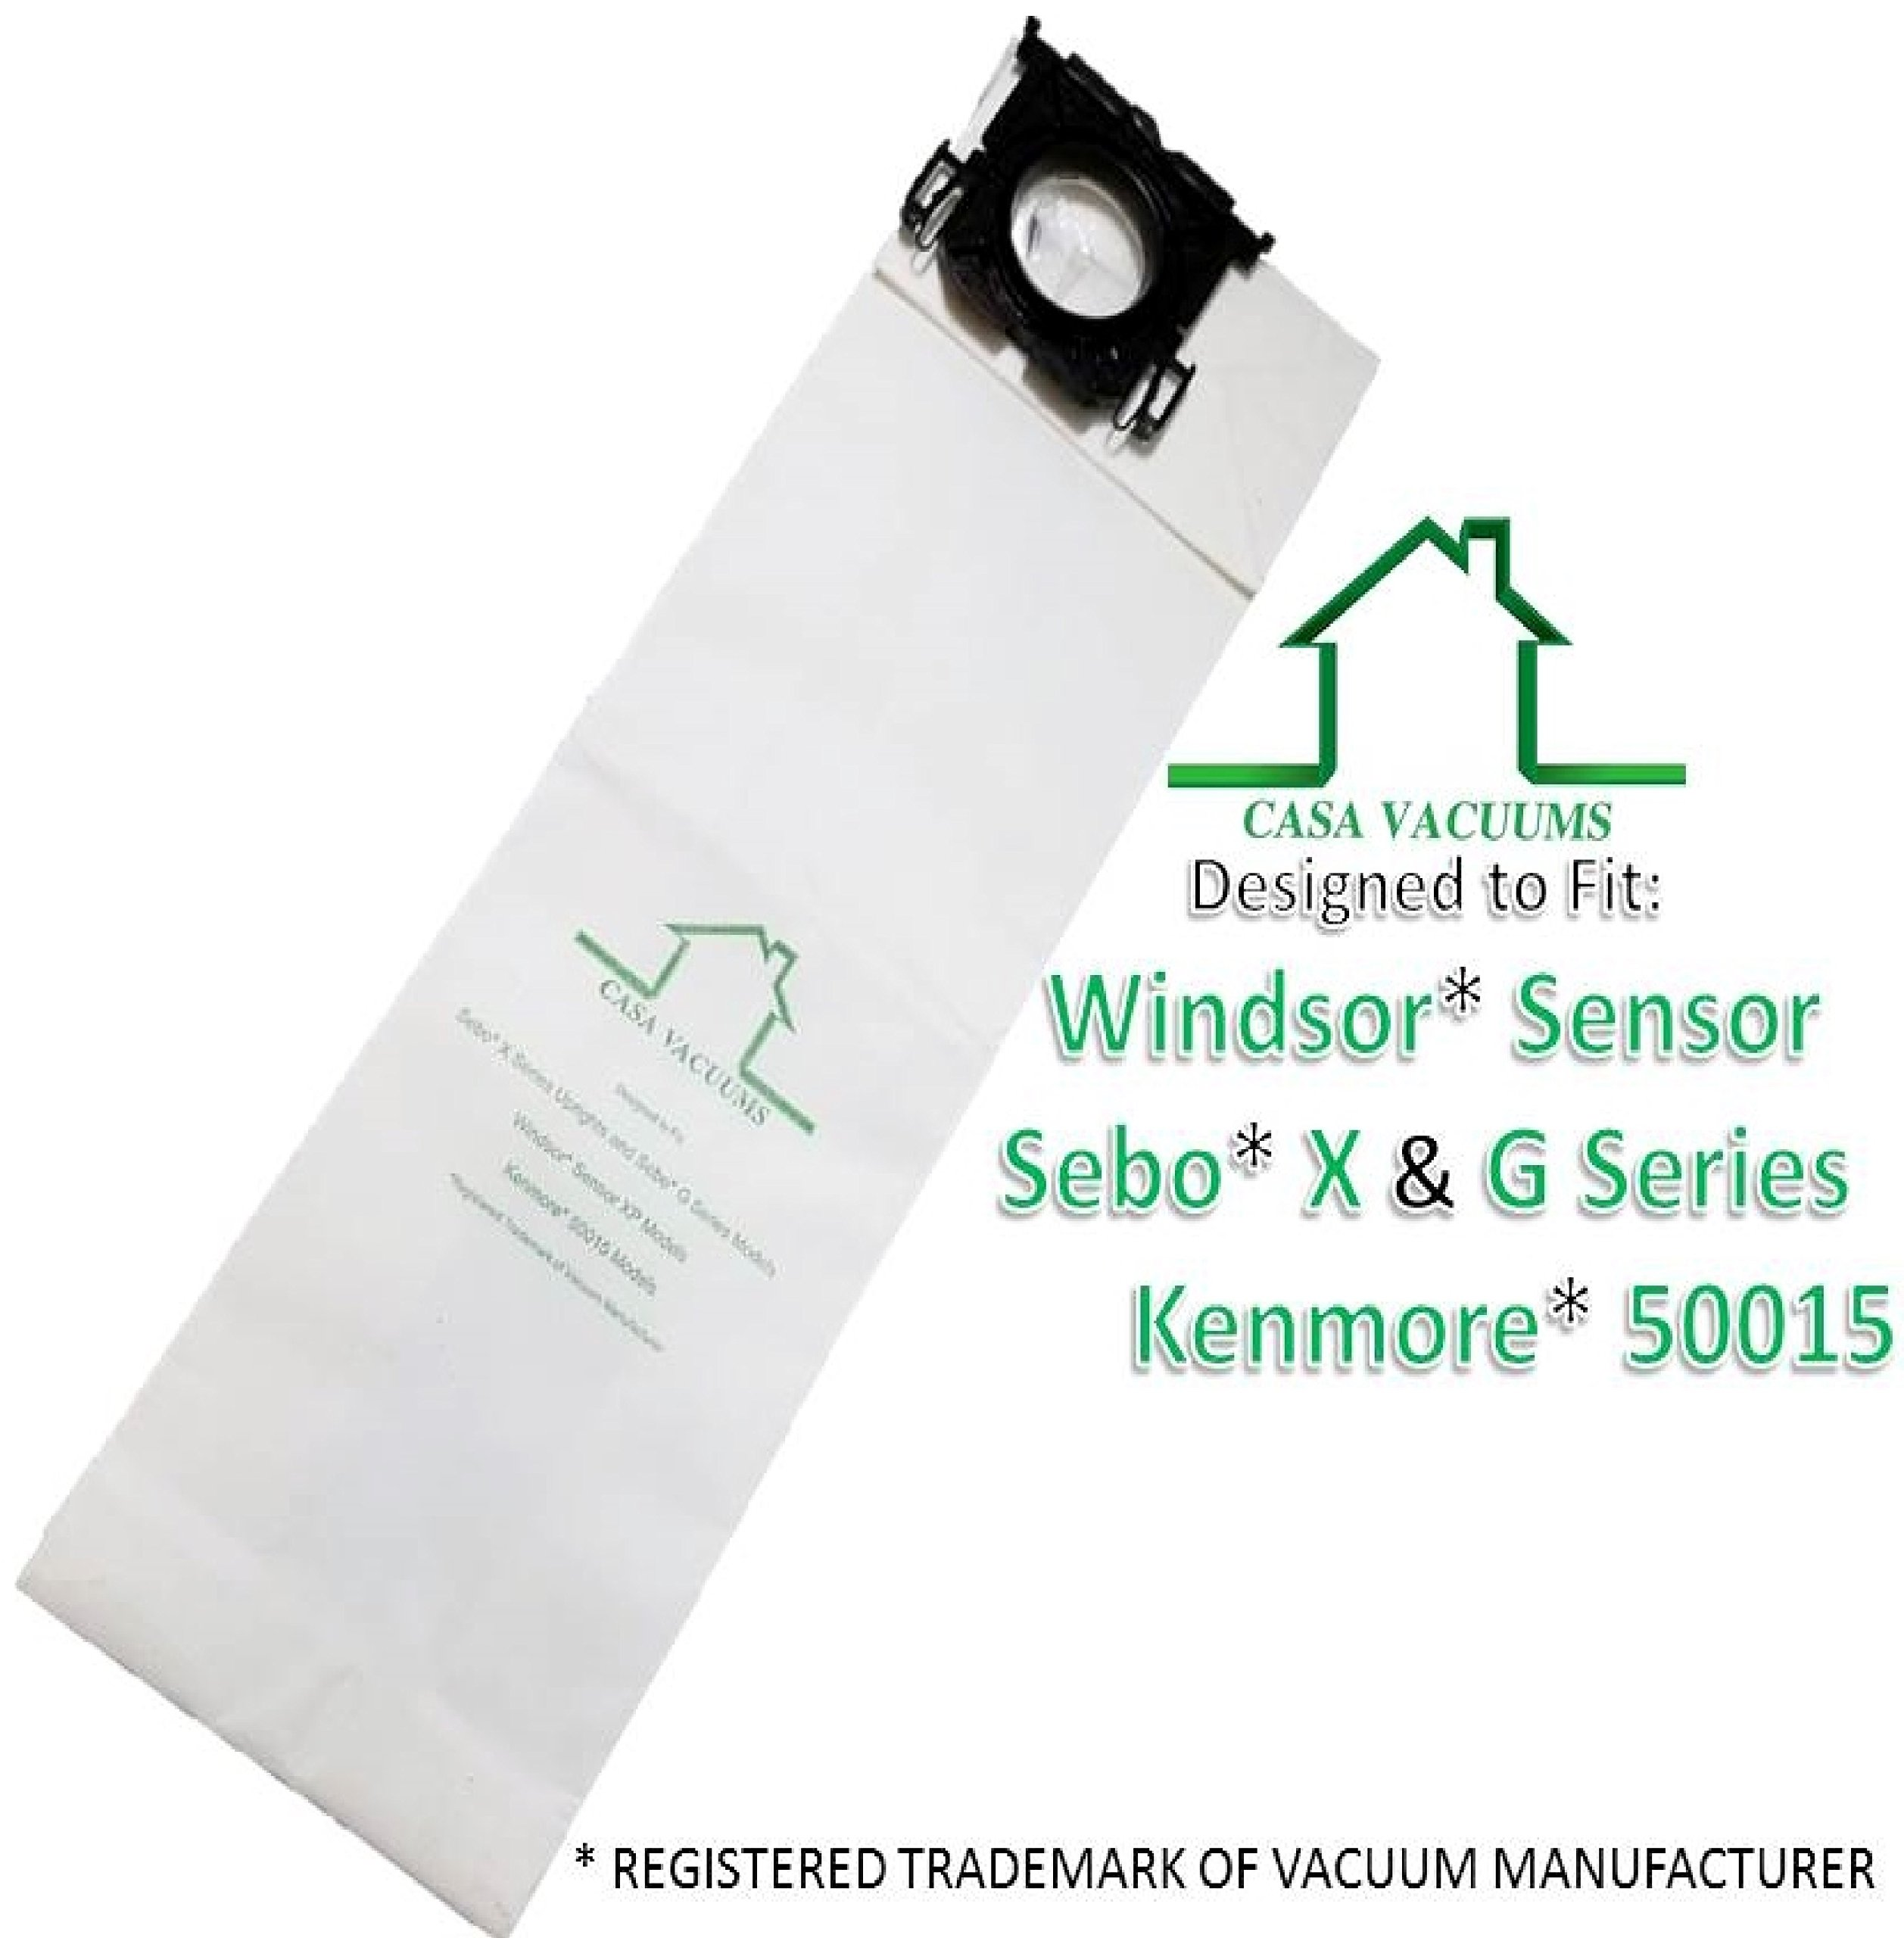 Casa Vacuums replacement for Windsor Sensor, Versamatic Plus, Sebo G X, Kenmore W ALLERGEN Filtration Commercial Upright Vacuum Bags, Fits 5300 86000500 5096Am 6629AM 6629ER 6431ER 50015 by Casa Vacuums